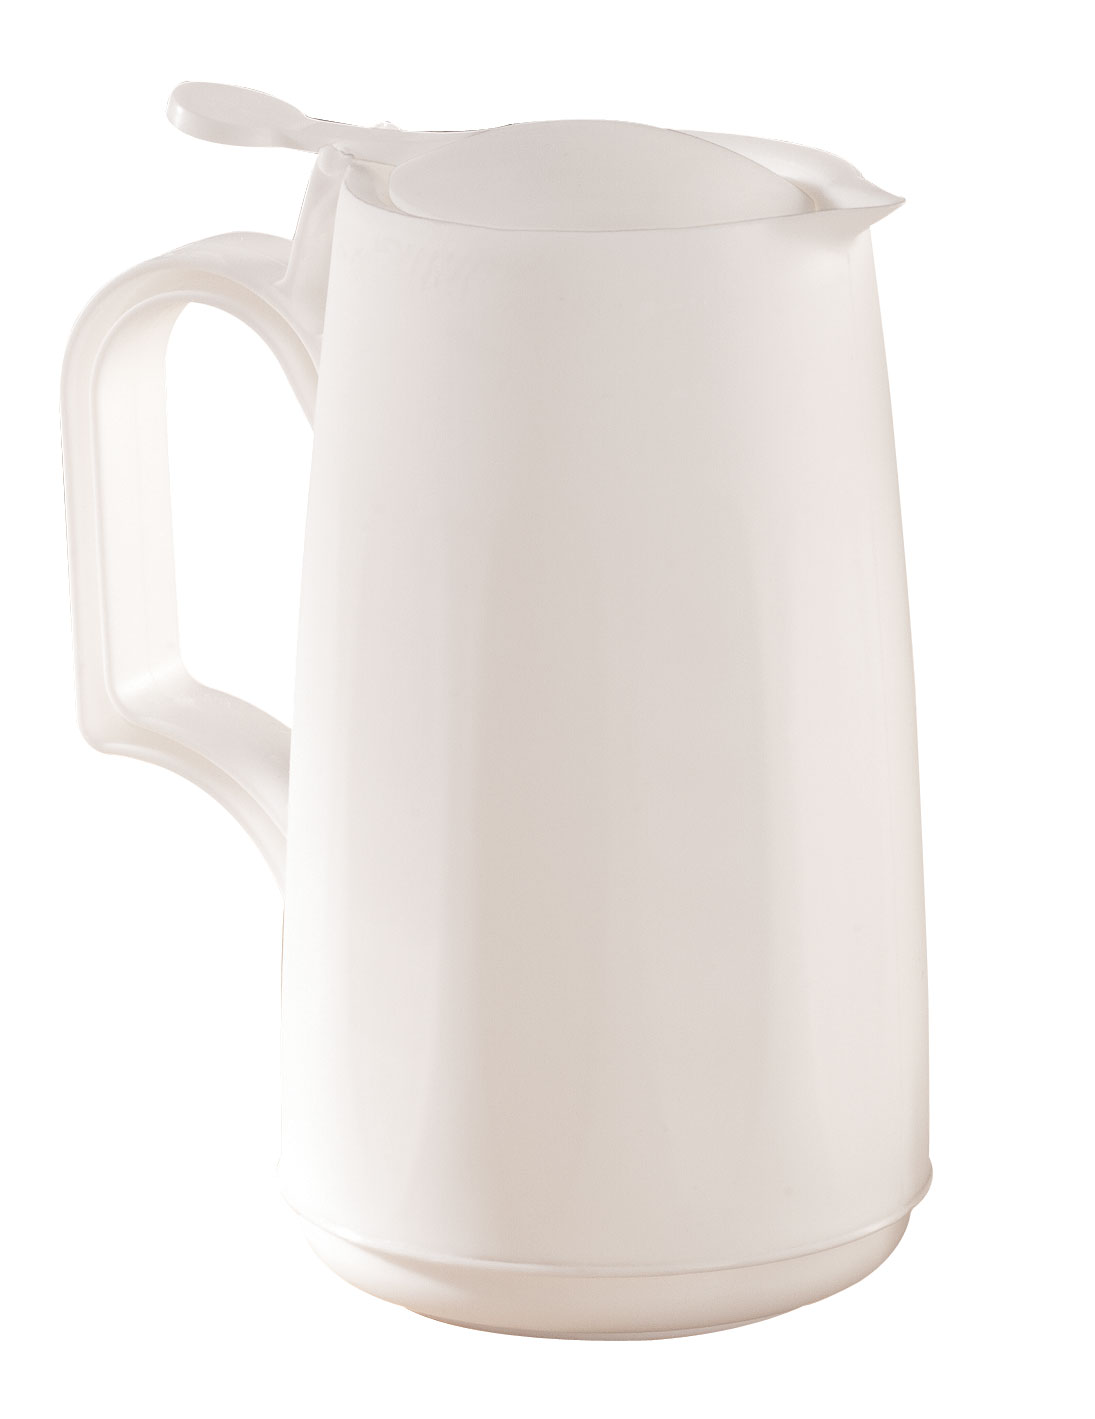 Microwave Syrup Dispenser Convenient microwave syrup dispenser heats and serves in one. 6  H plastic syrup pitcher with easy-pour spout and thumb-control lid is dishwasher safe and holds 12 oz. Great for gravy, too.